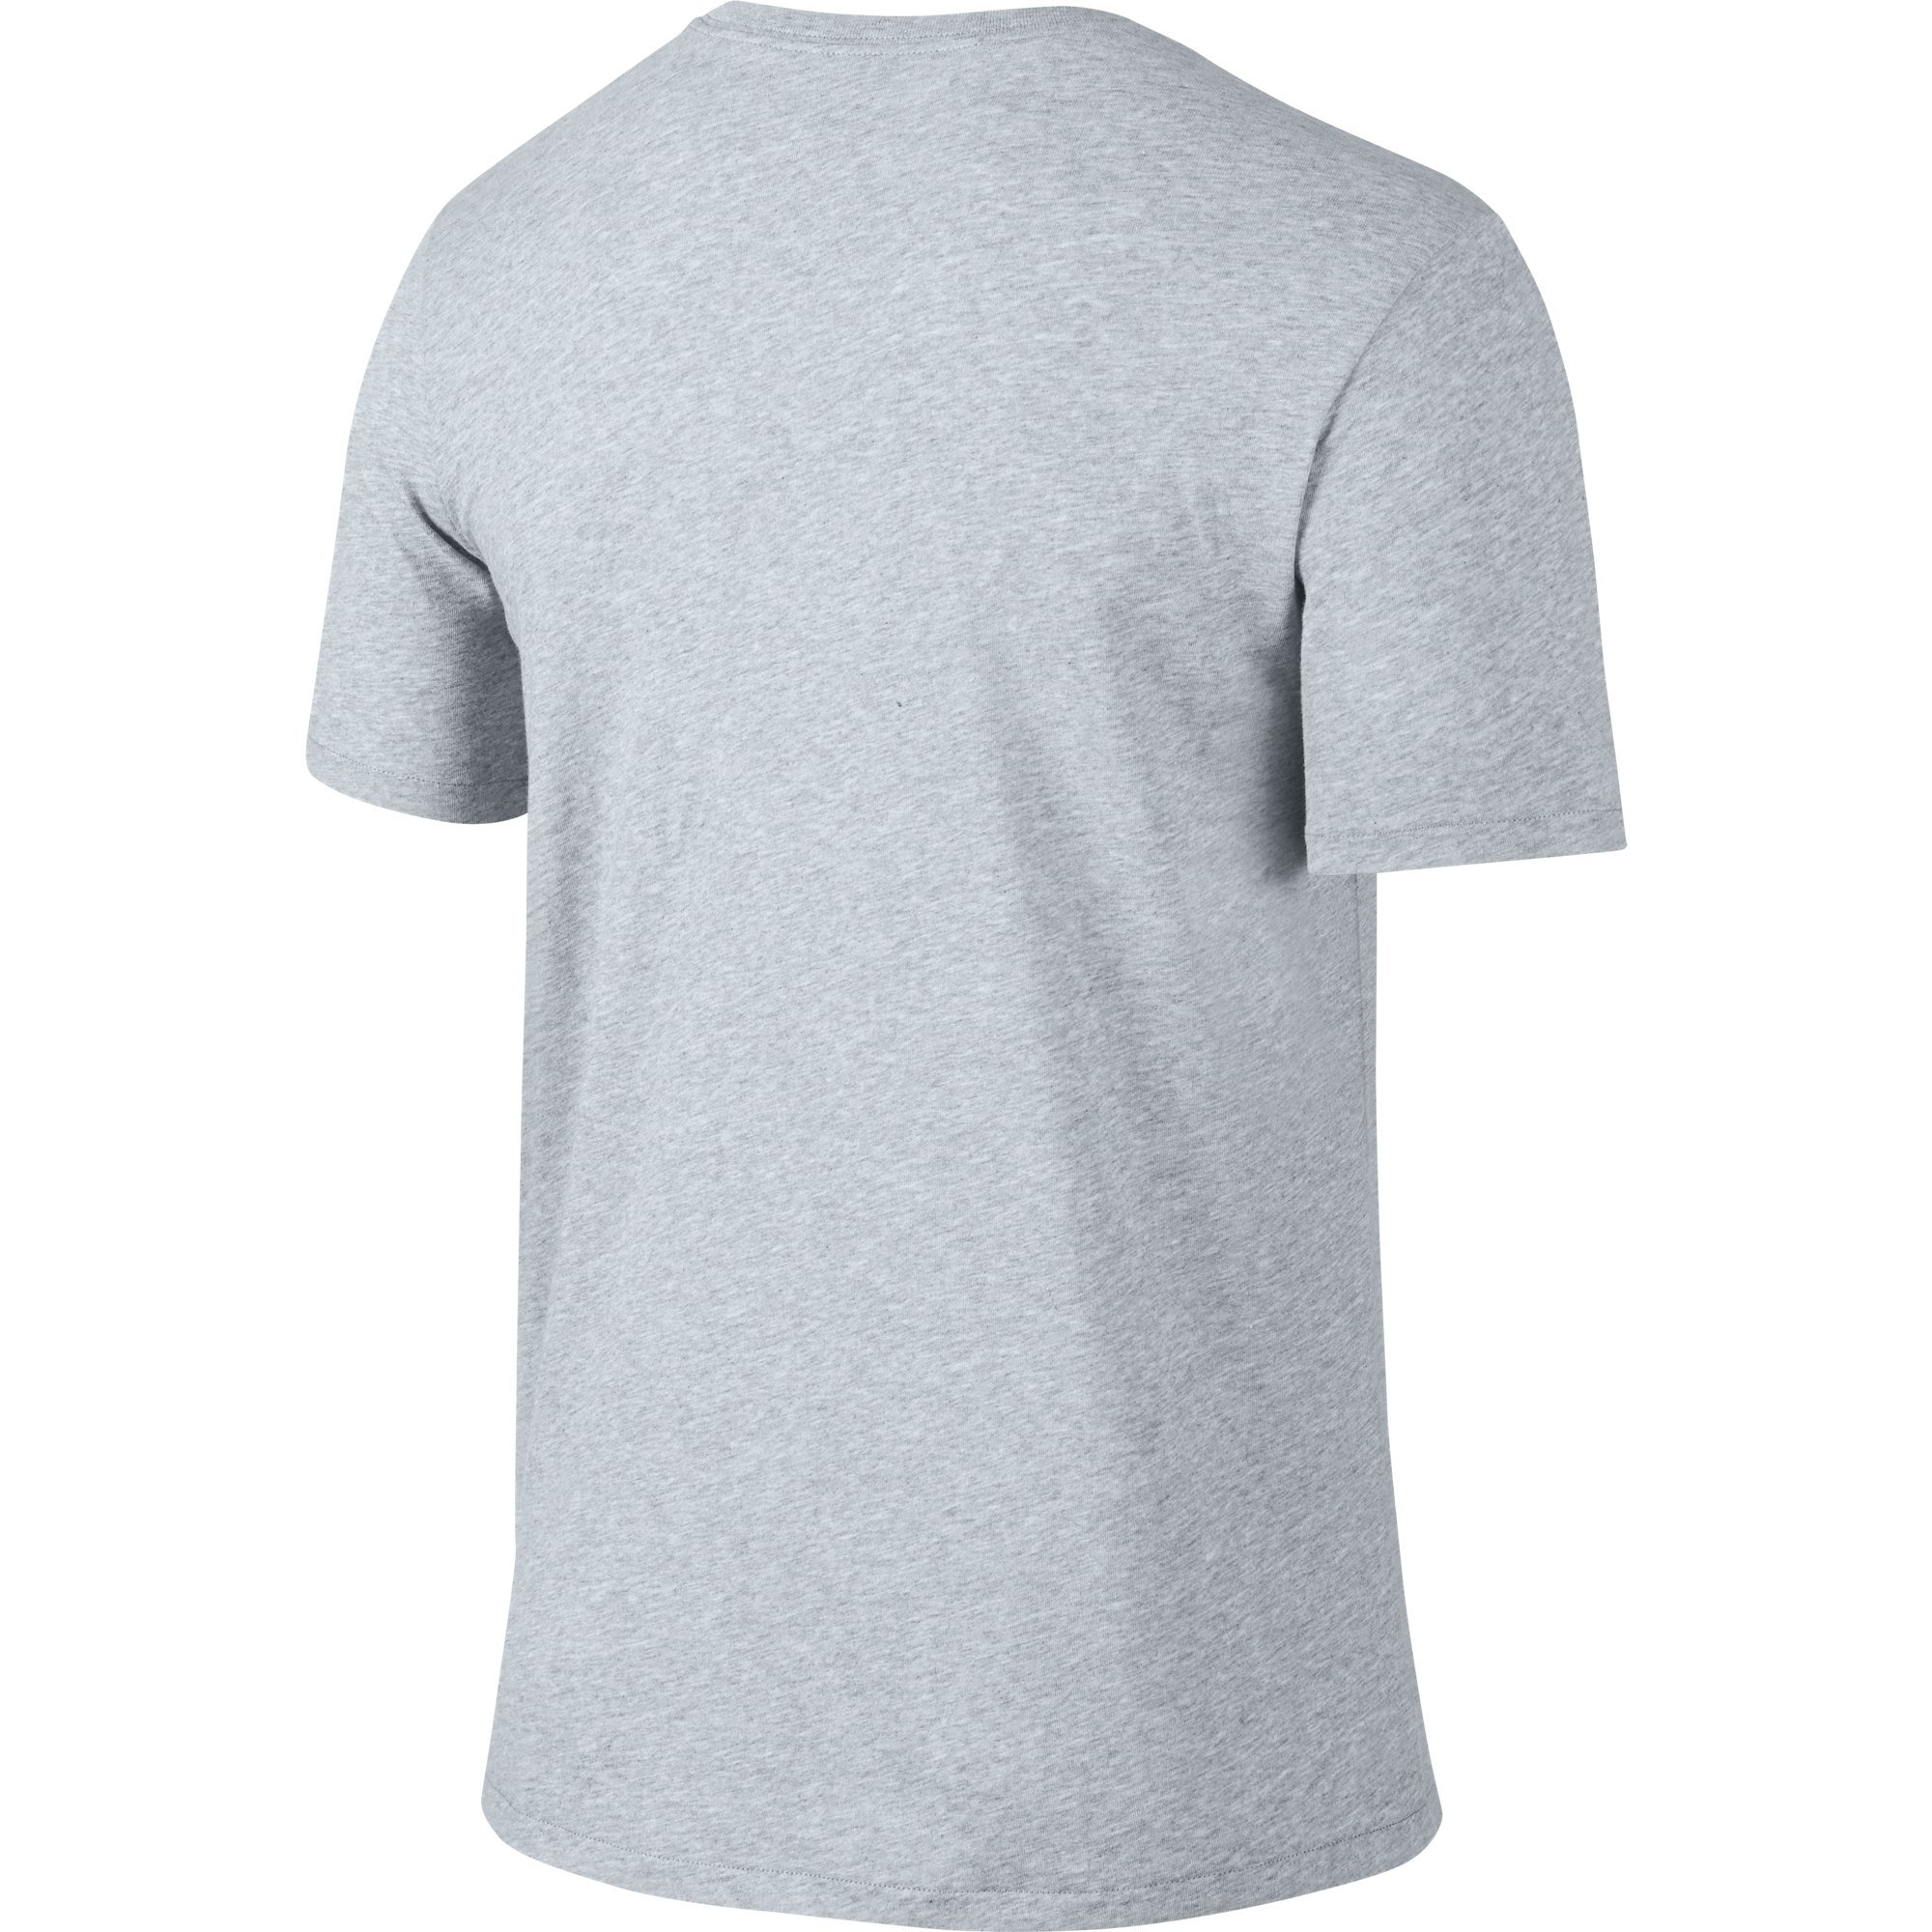 NIKE Men's Dri-FIT Cotton 2.0 Tee, Birch Heather/Birch Heather/Black, Small by Nike (Image #2)